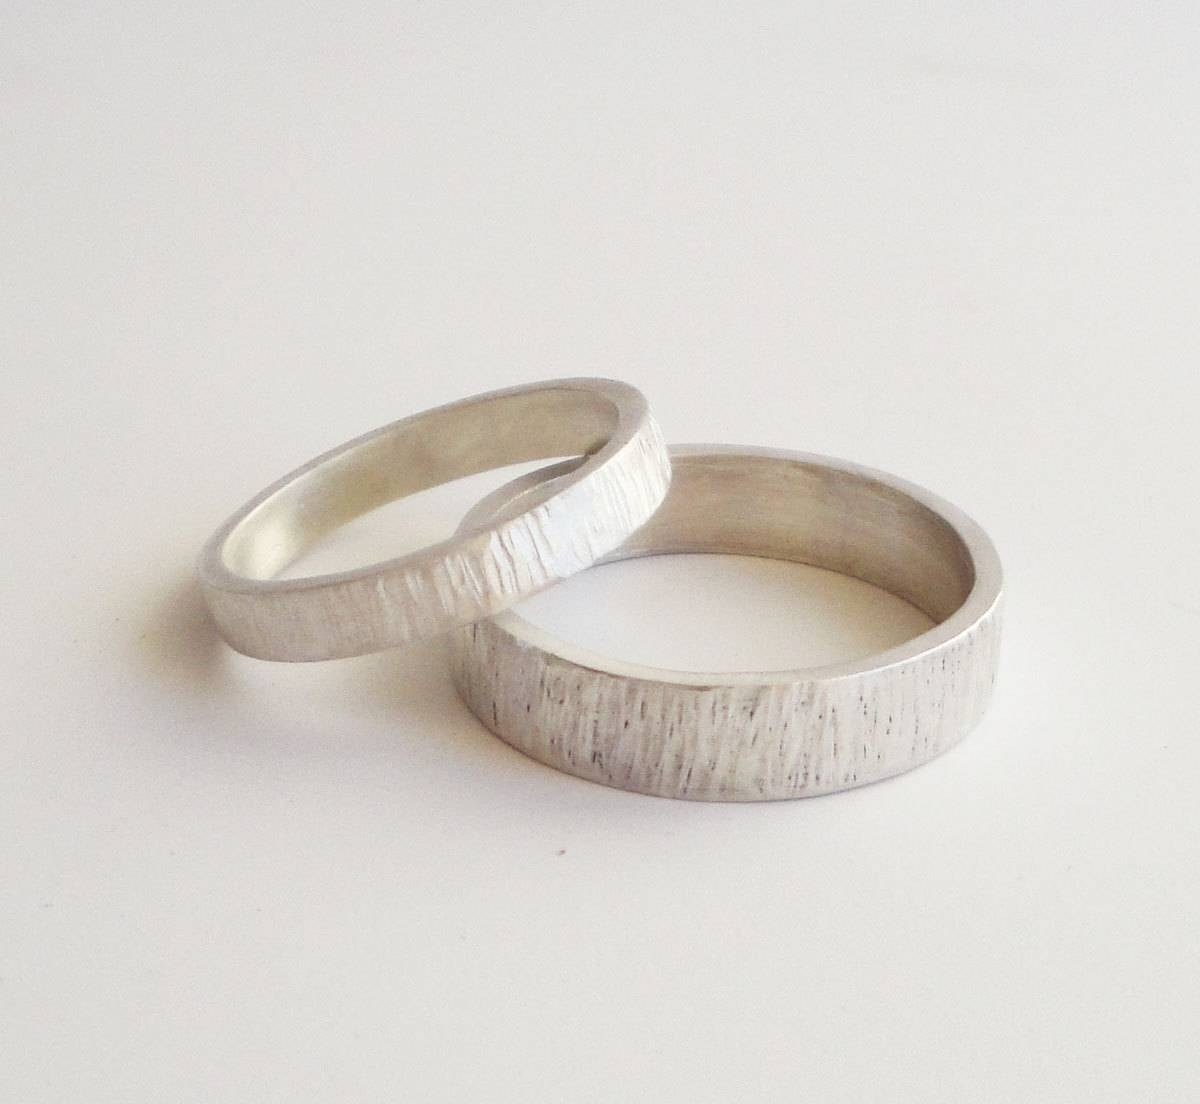 Simple Wedding Rings Set Handmade Hammered Sterling Silver Inside Mens Handmade Wedding Bands (View 8 of 15)